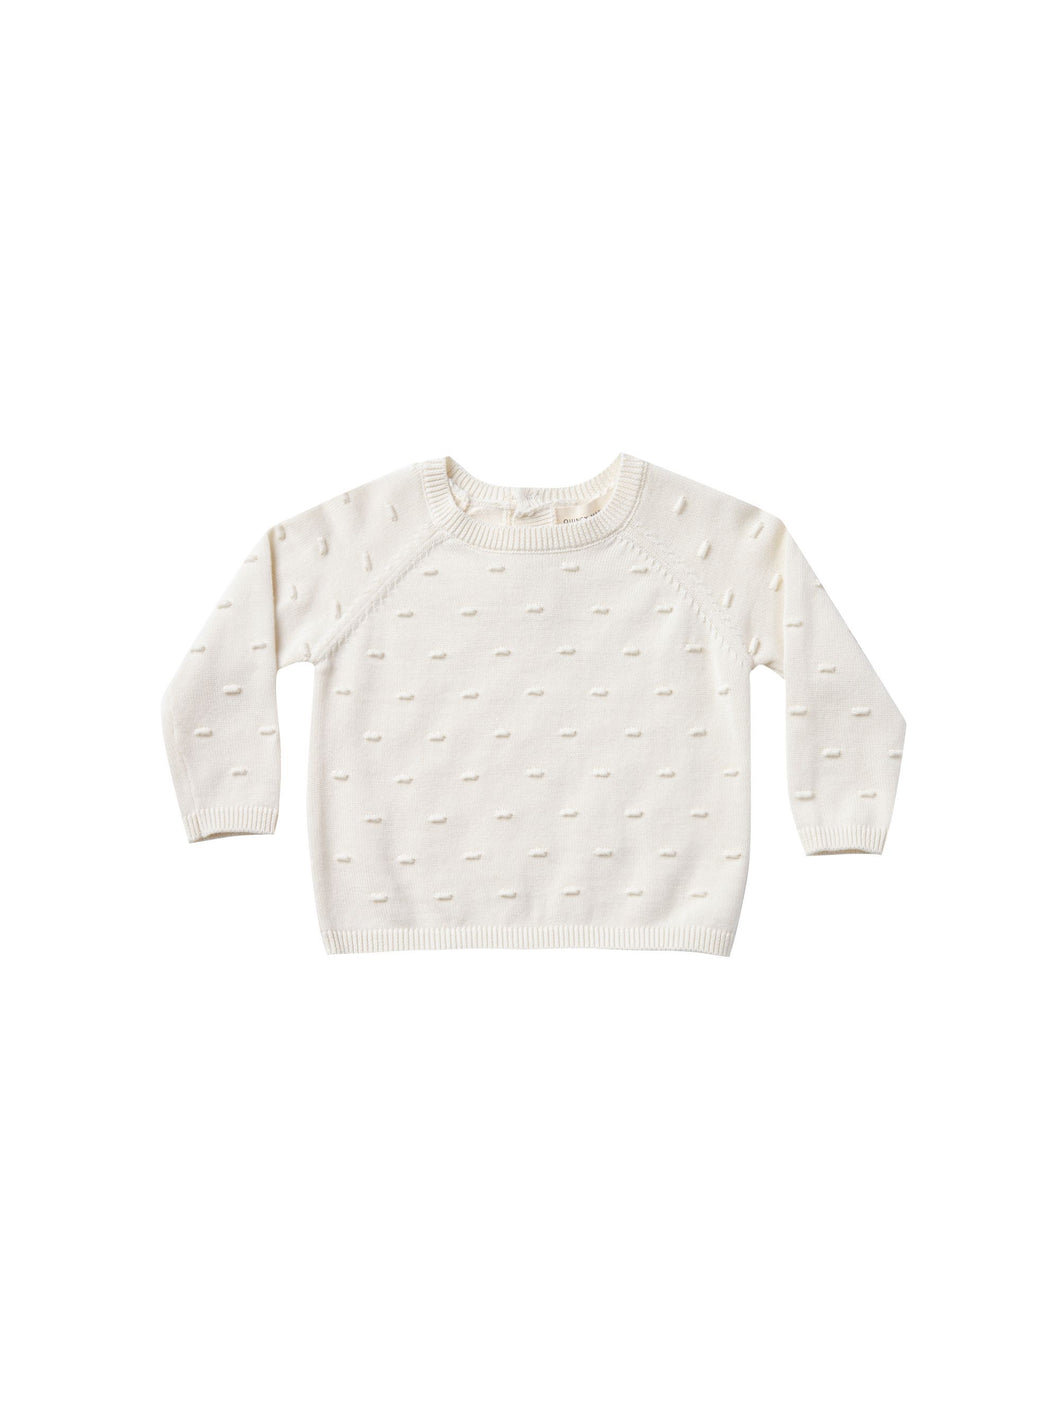 Quincy Mae Bailey knit sweater - ivory